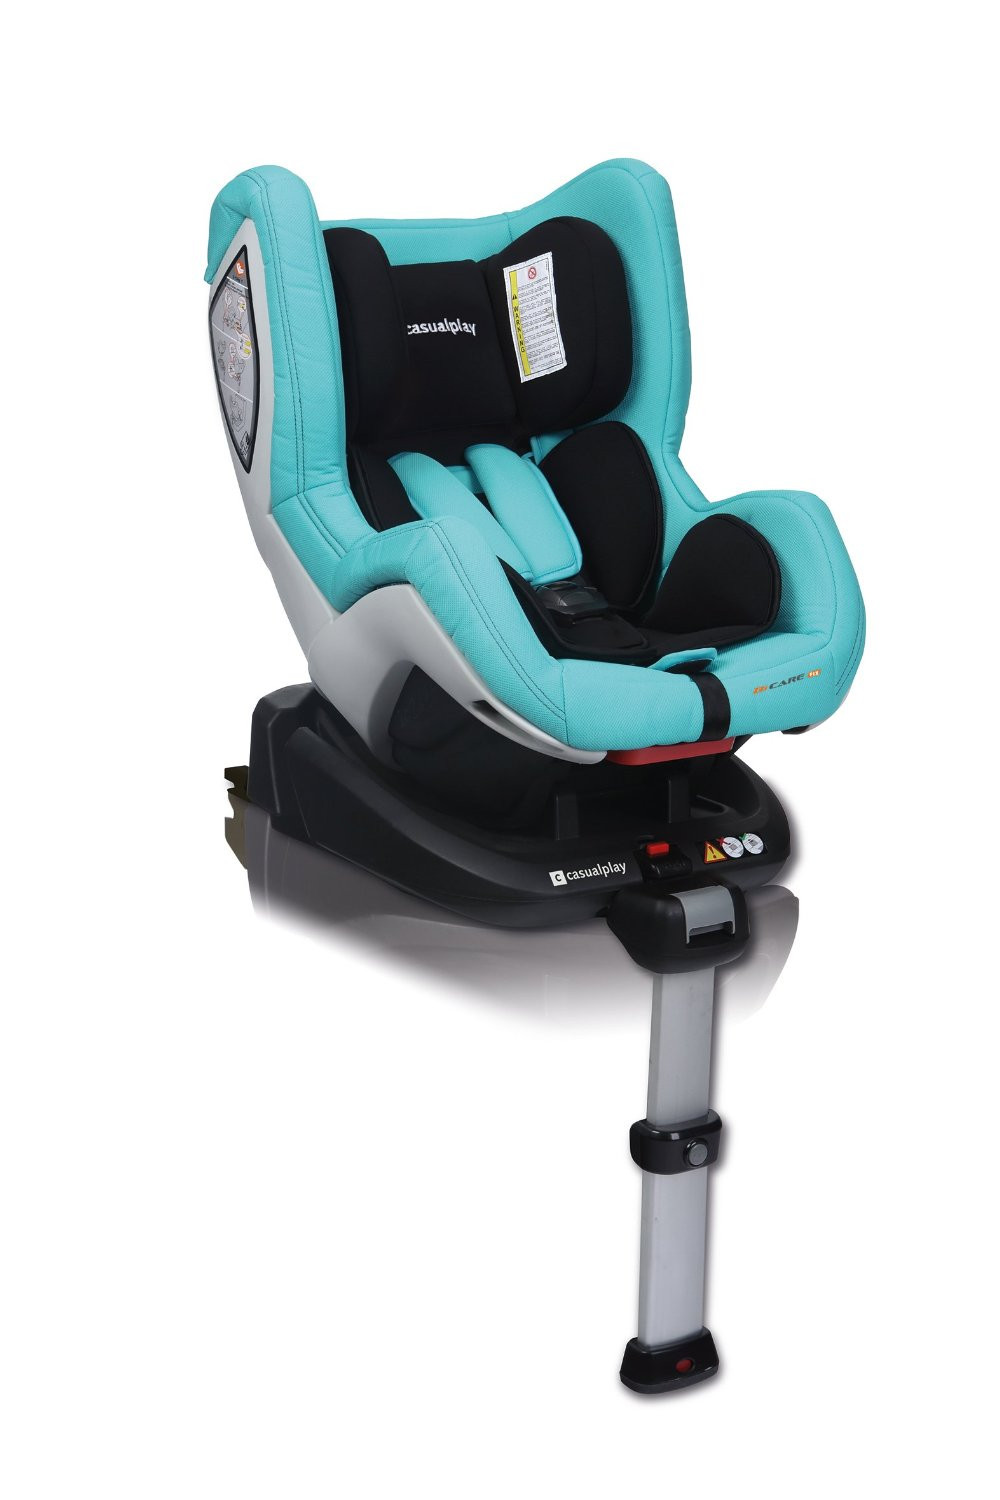 Silla de coche bicare fix grupo 0 1 casualplay opiniones for Sillas para bebe para carro